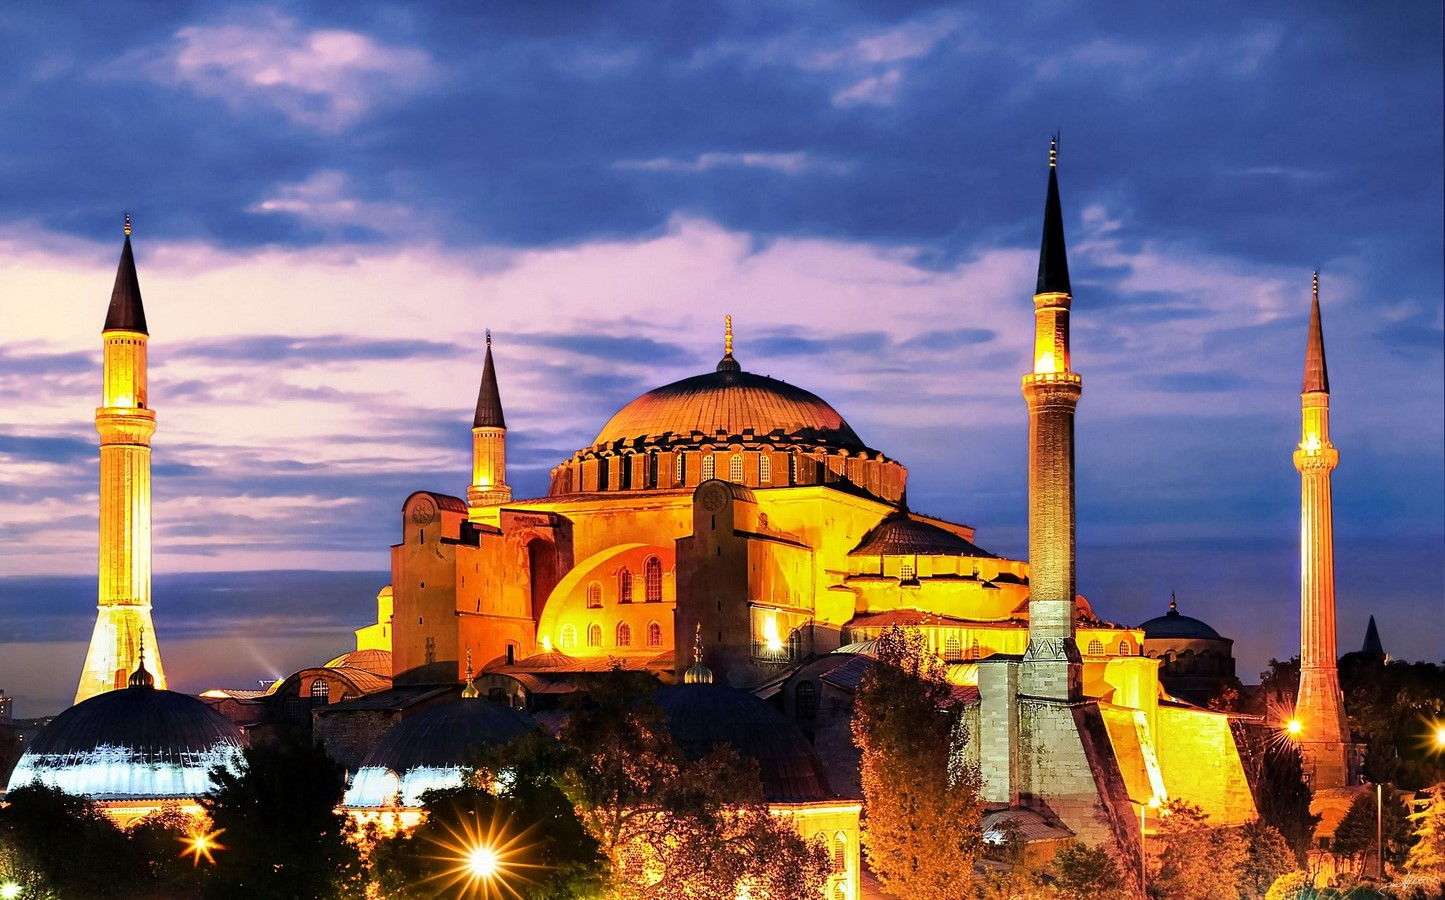 10 things you didn't know about Hagia Sophia - Sheet1